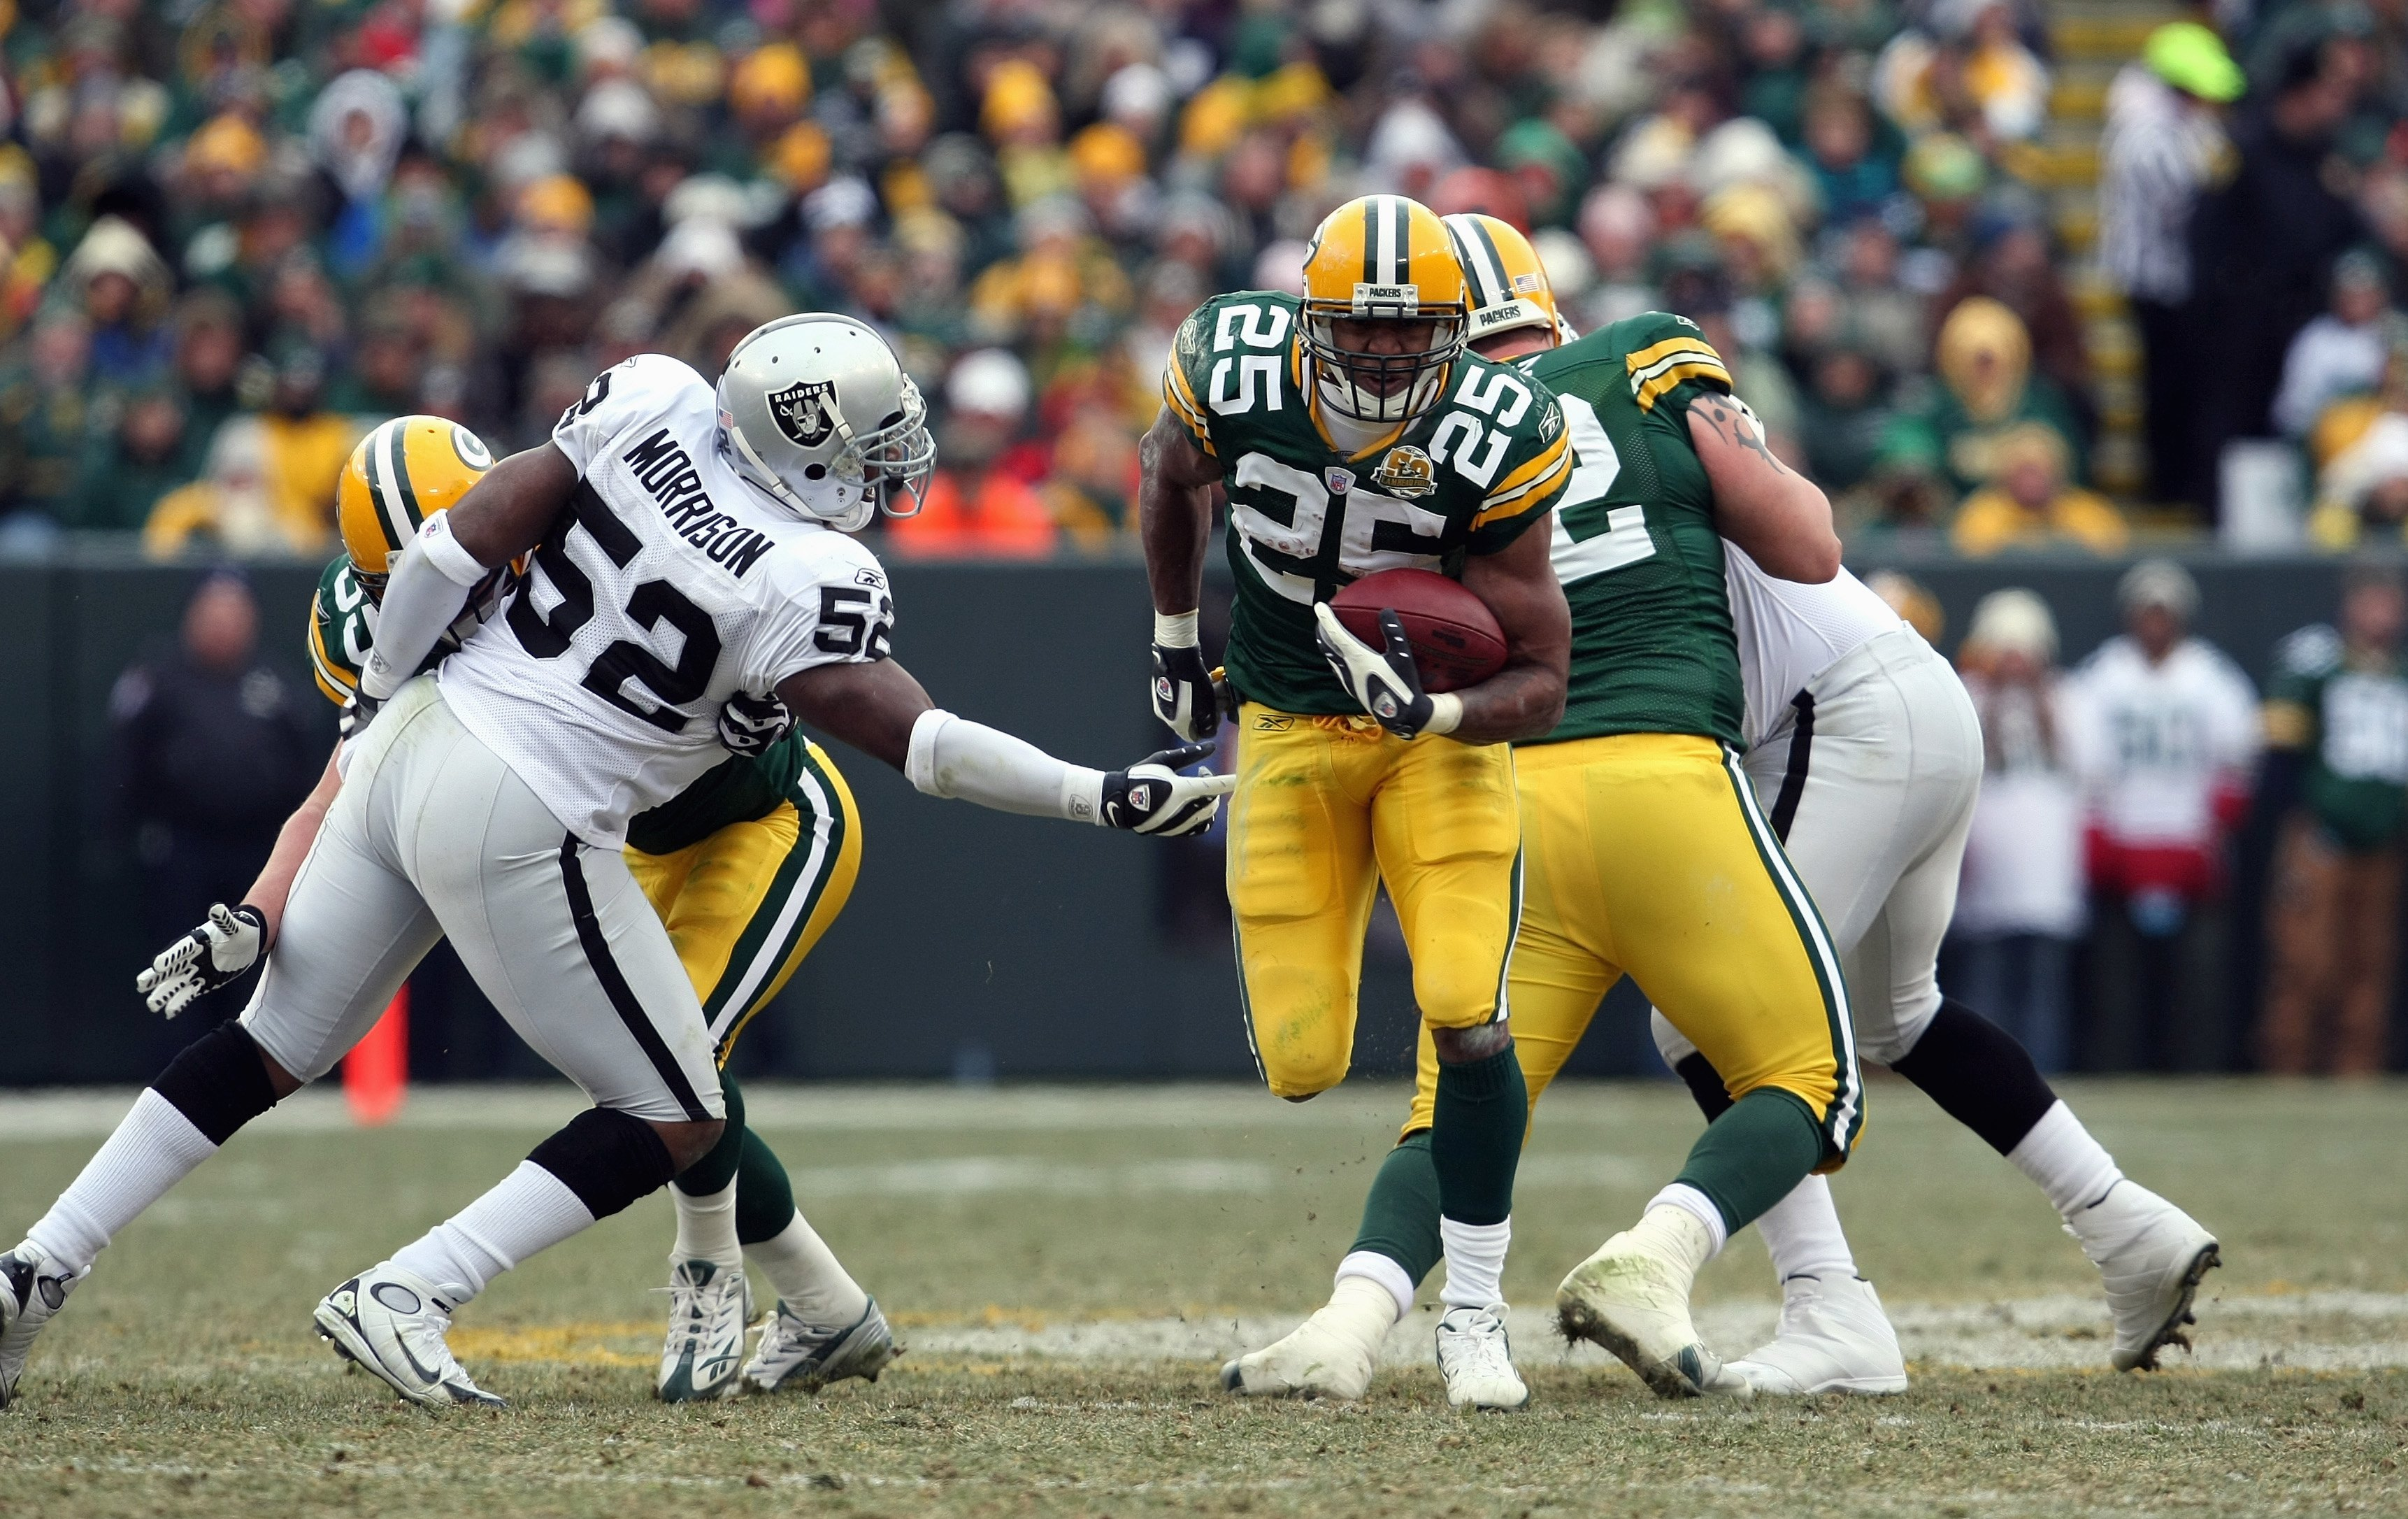 GREEN BAY, WI - DECEMBER 09: Ryan Grant #25 of the Green Bay Packers carries the ball against the Oakland Raiders on December 9, 2007 at Lambeau Field in Green Bay, Wisconsin. The Packers defeated the Raiders 38-7 to win the NFC North Division title. (Pho